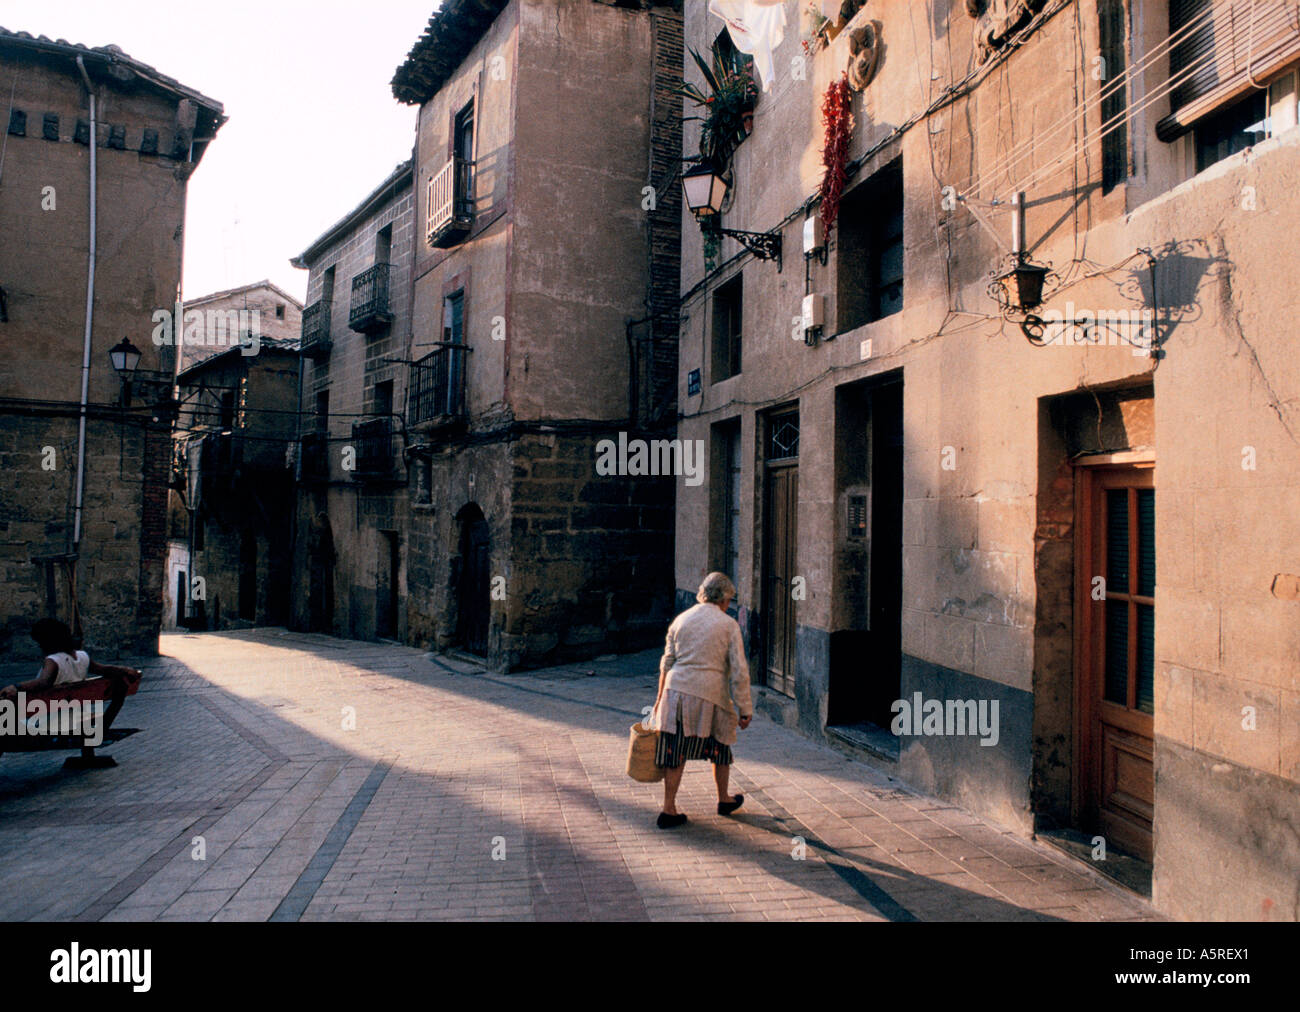 Capital Of Rioja wine capital rioja stock photos & wine capital rioja stock images